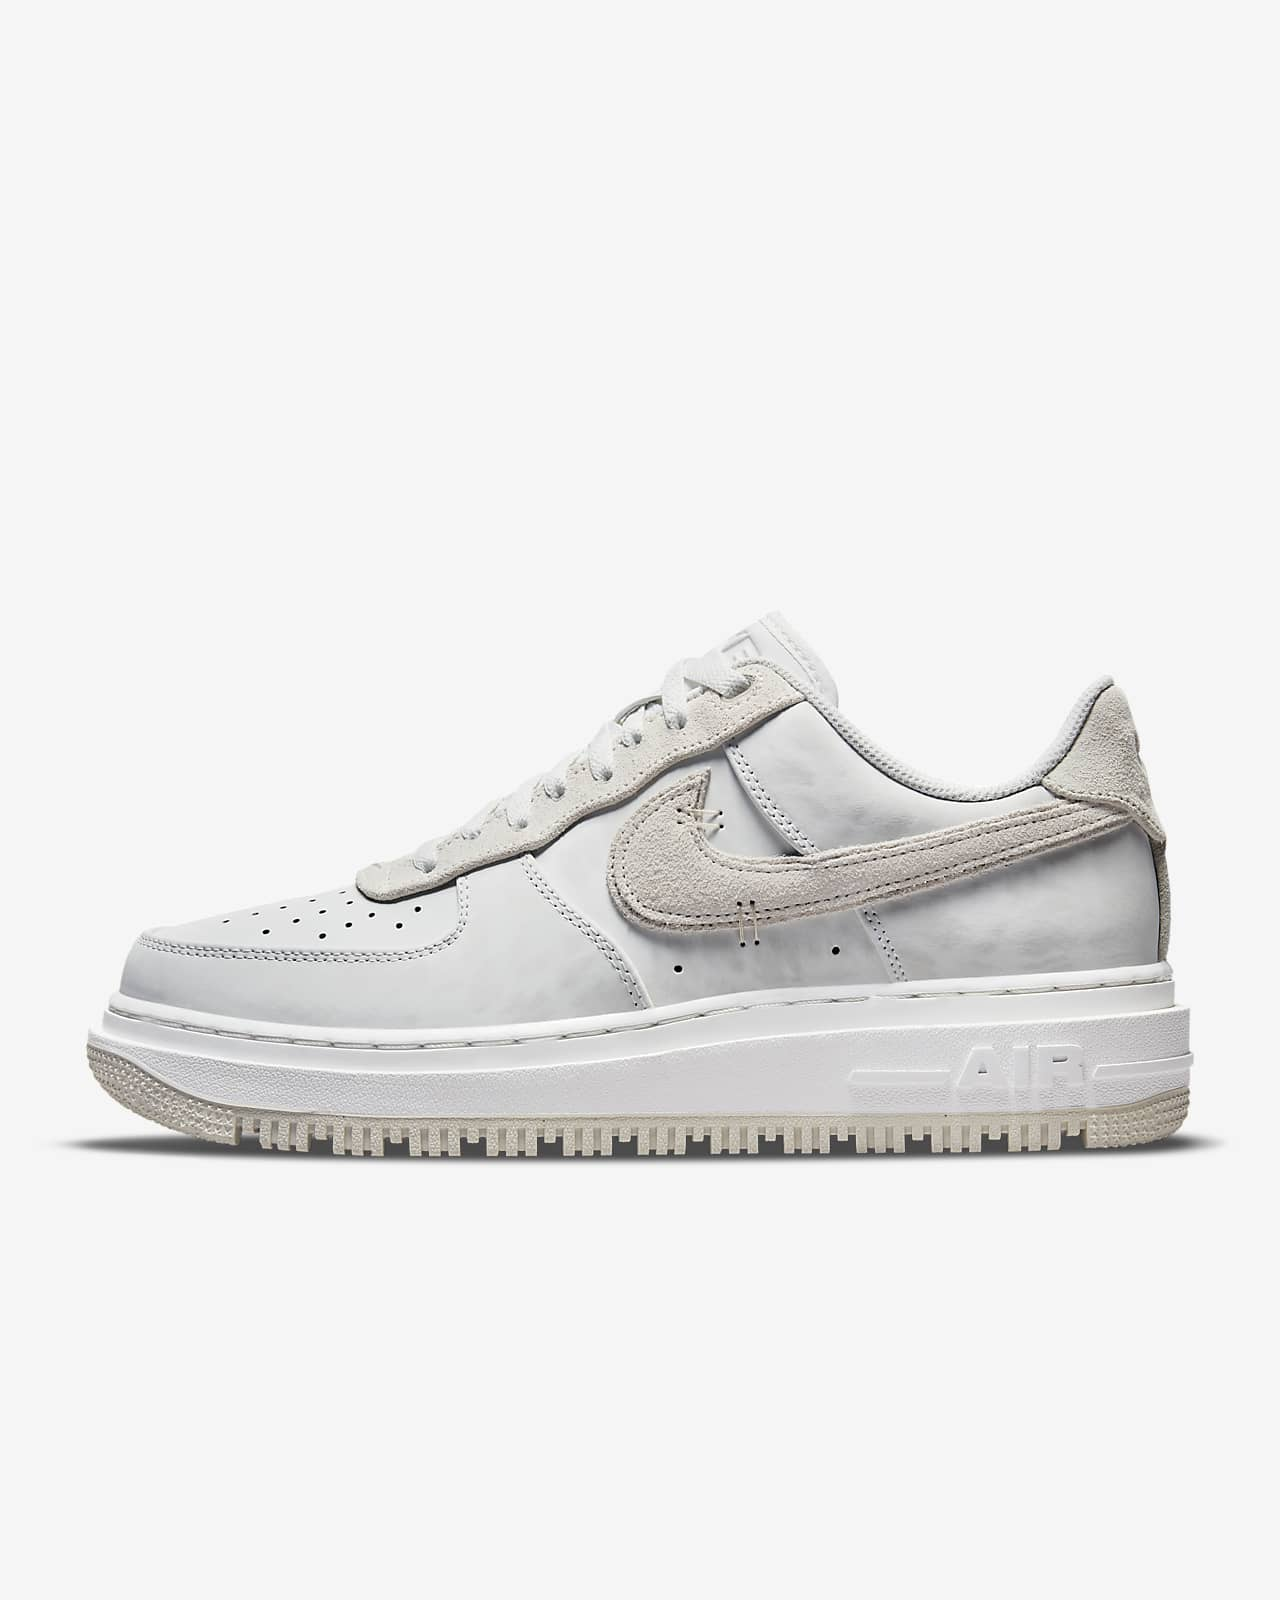 Nike Air Force 1 Luxe Men's Shoes